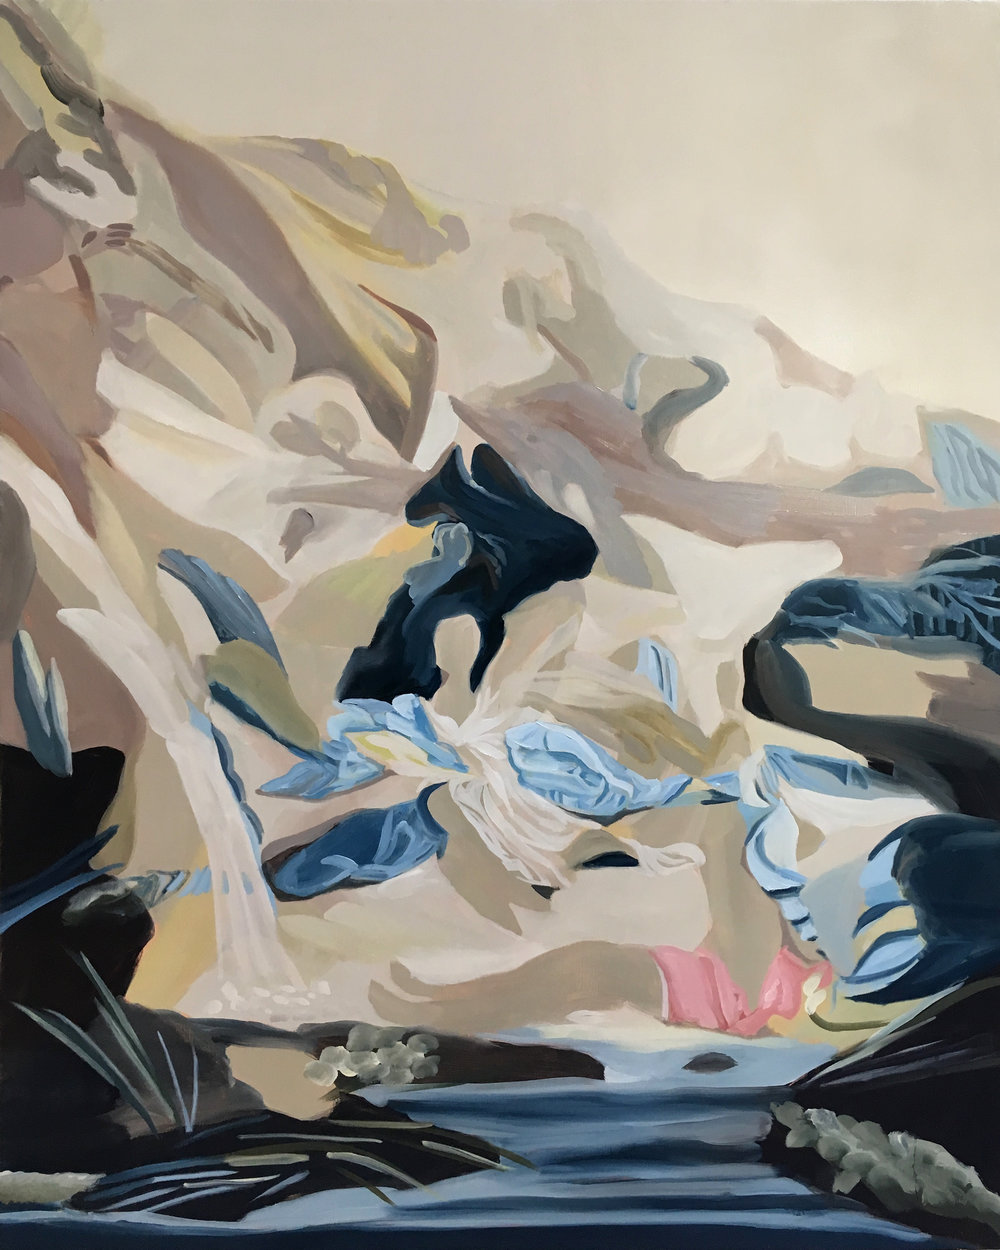 Kimberly Brooks  The Myth of the Cave , 2017 oil on linen 44h x 36w in.